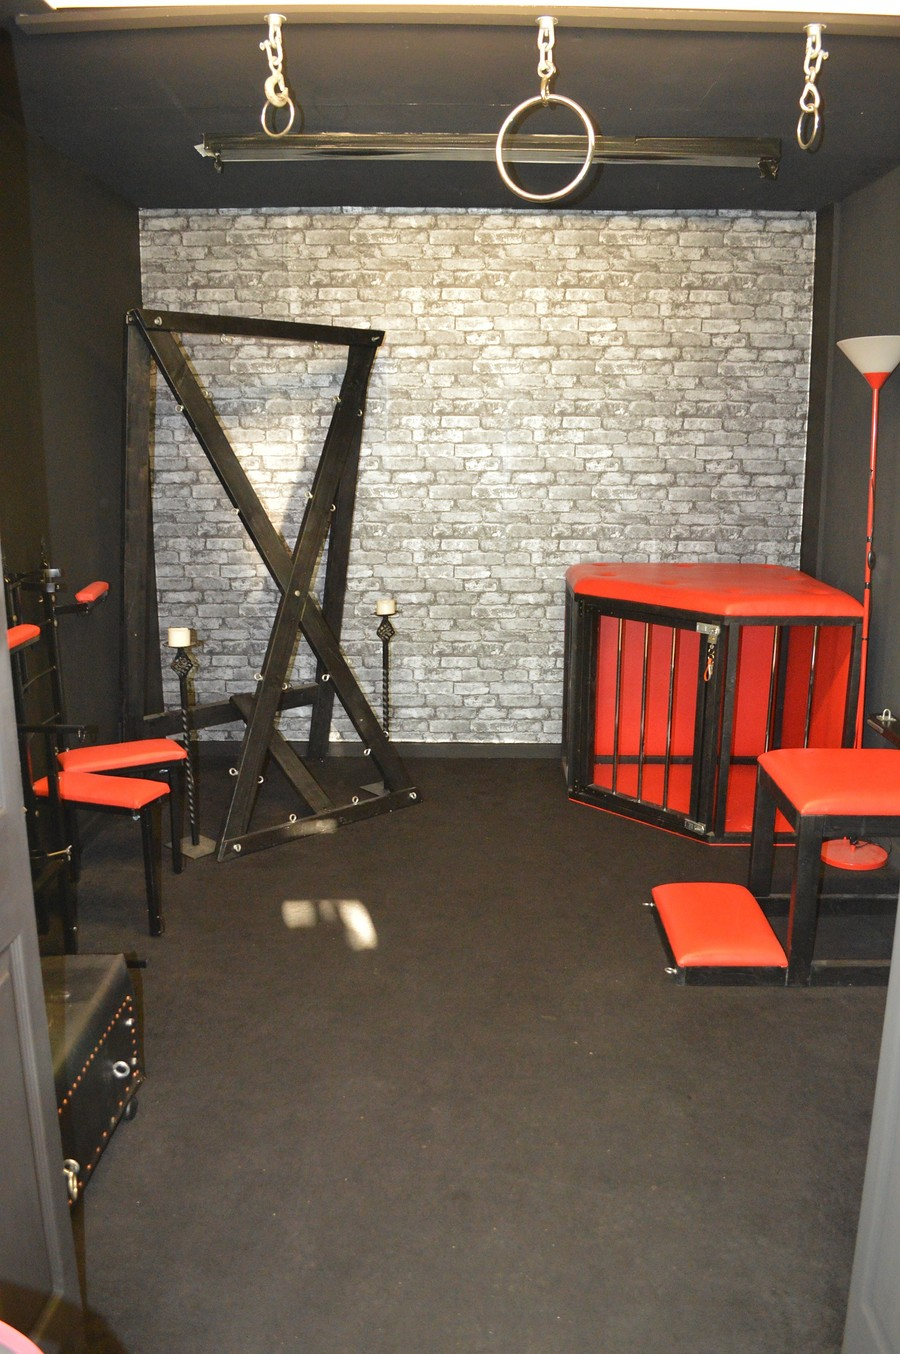 Dungeon set / Taken at Fine and DanDee Studio / Uploaded 4th January 2019 @ 04:15 PM